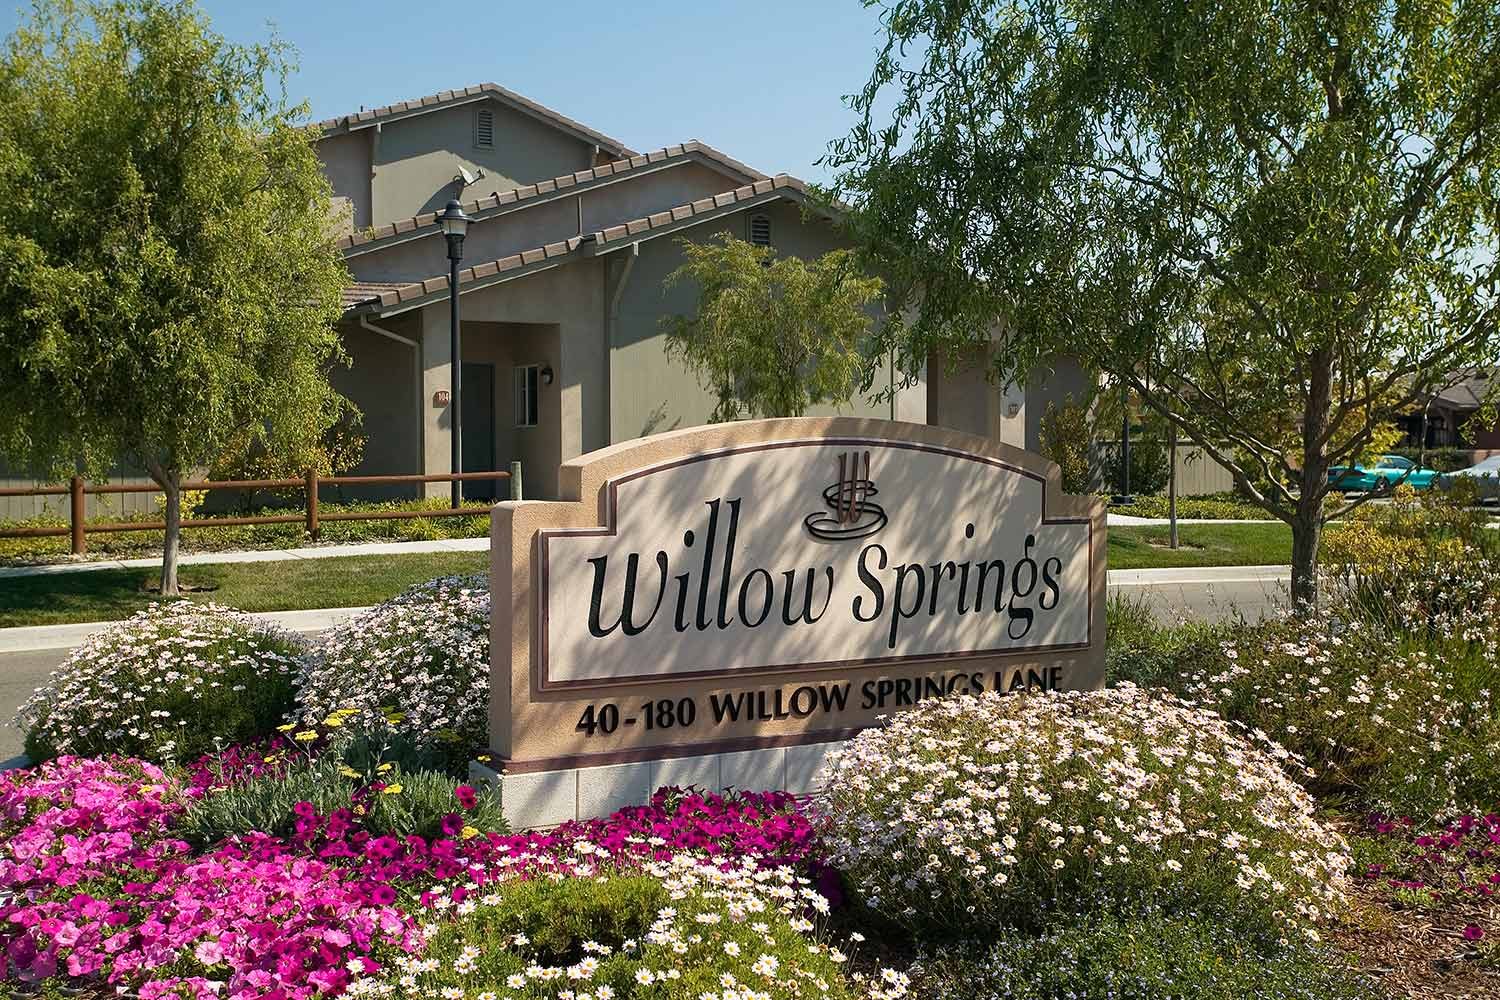 Signage at Willow Springs Apartments in Goleta, CA